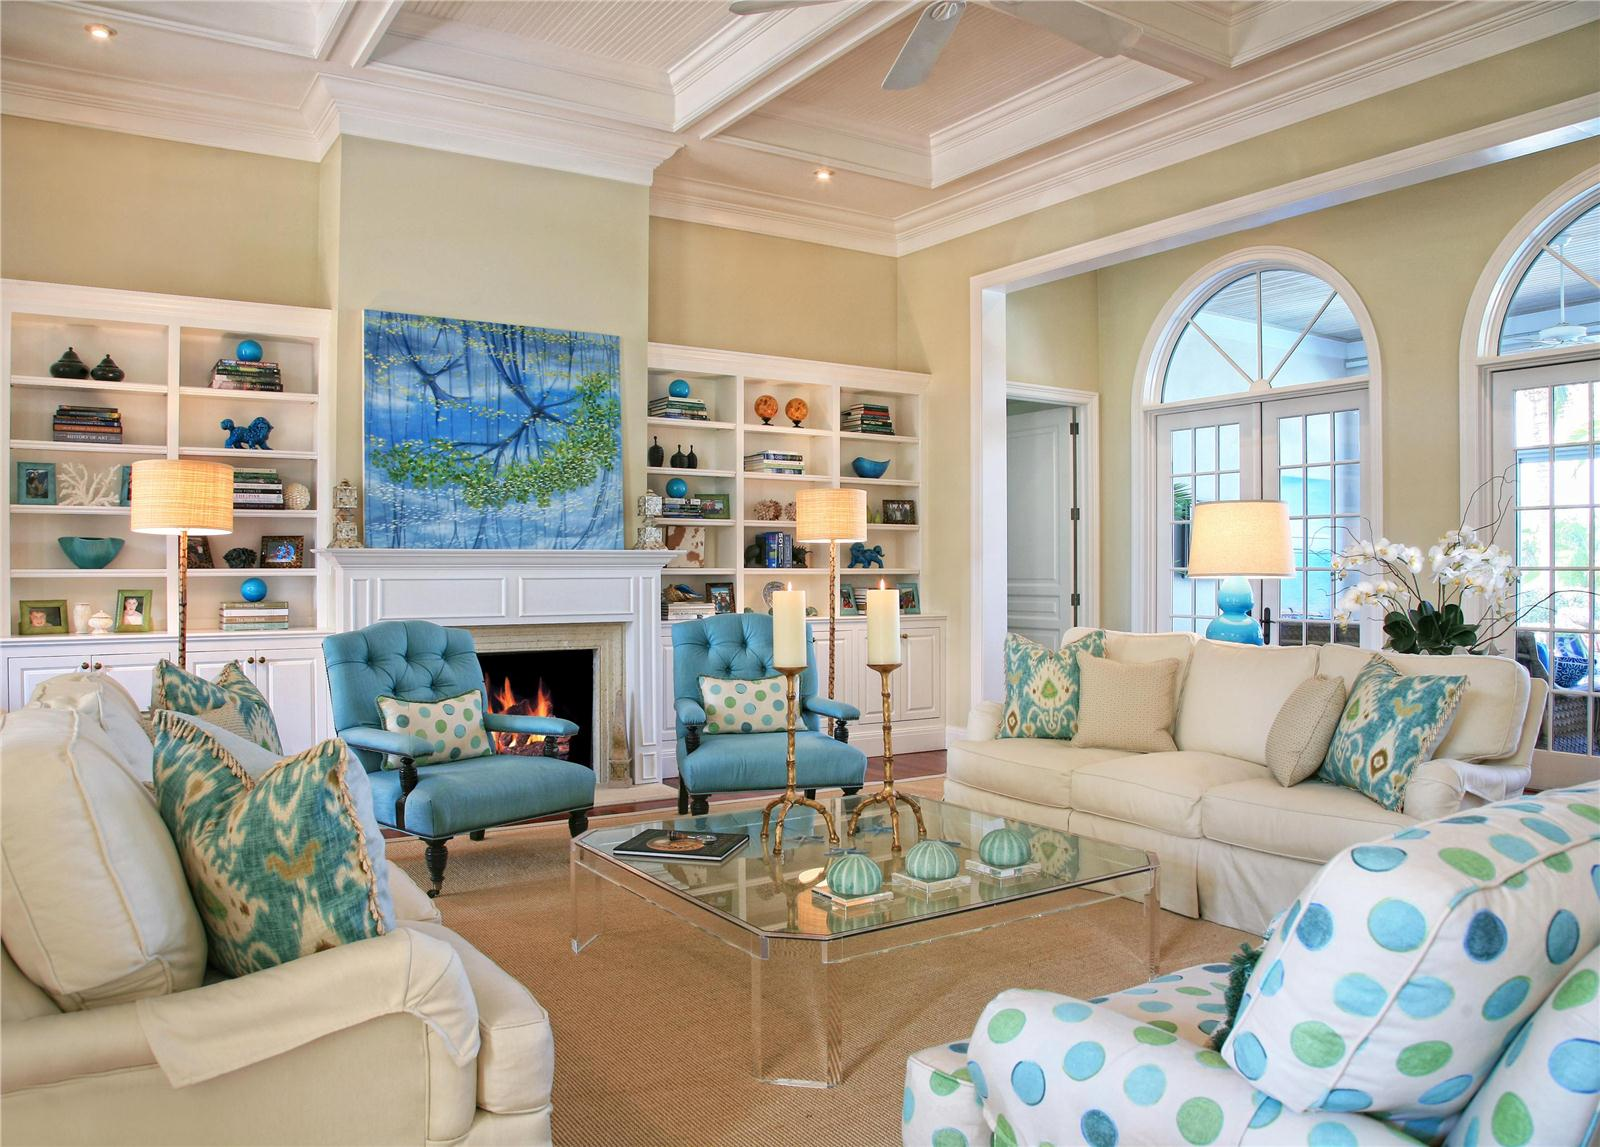 coast furniture and interiors. beautiful blues and greens highlight this coastal home coast furniture interiors